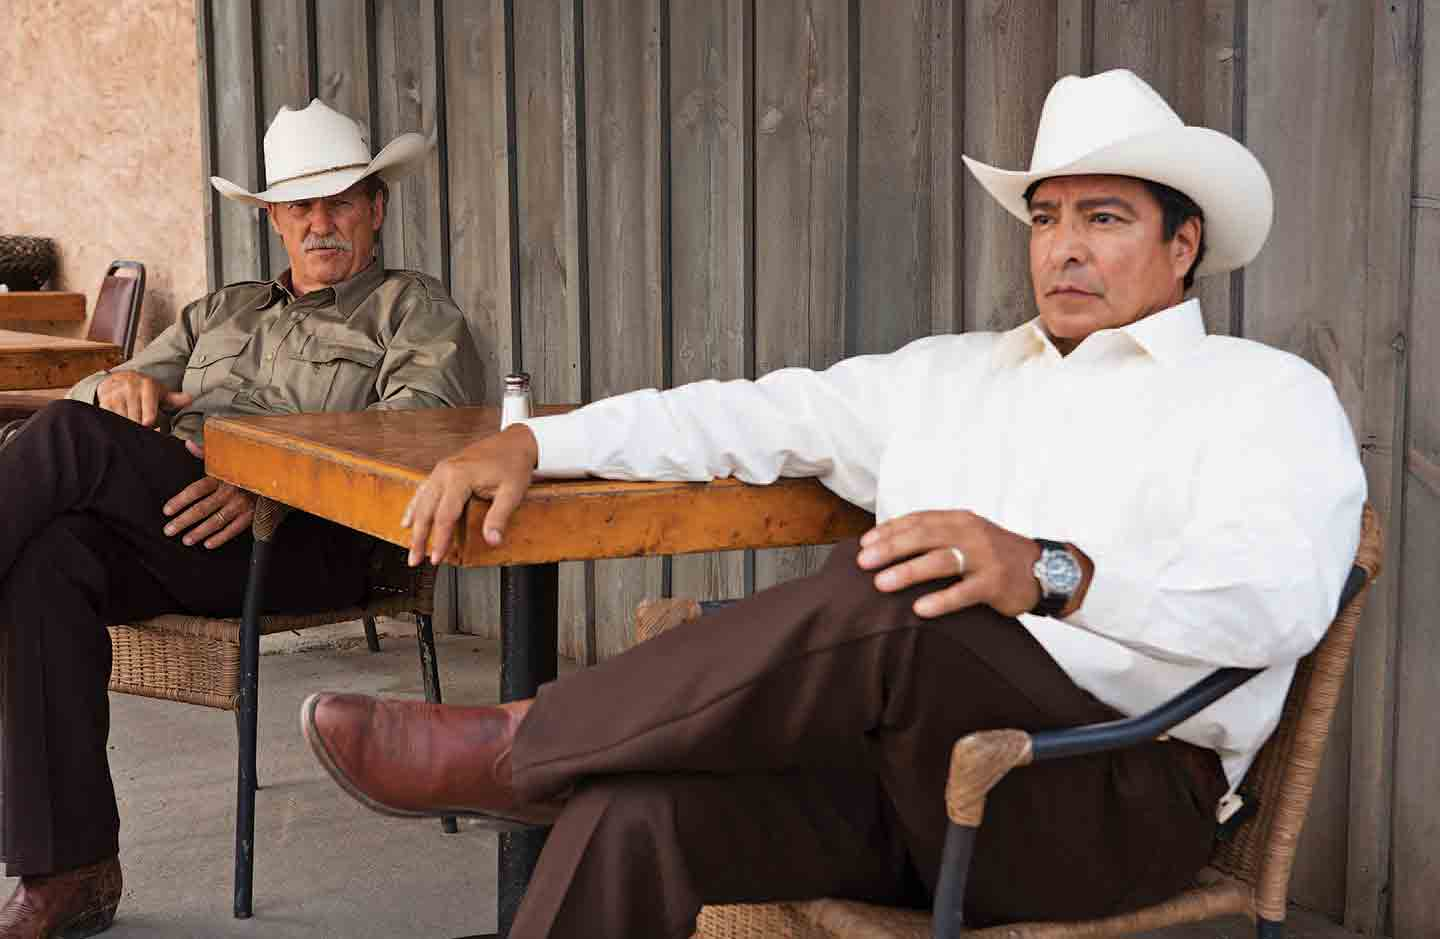 Jeff Bridges and Gil Birmingham in Taylor Sheridan's Hell or High Water